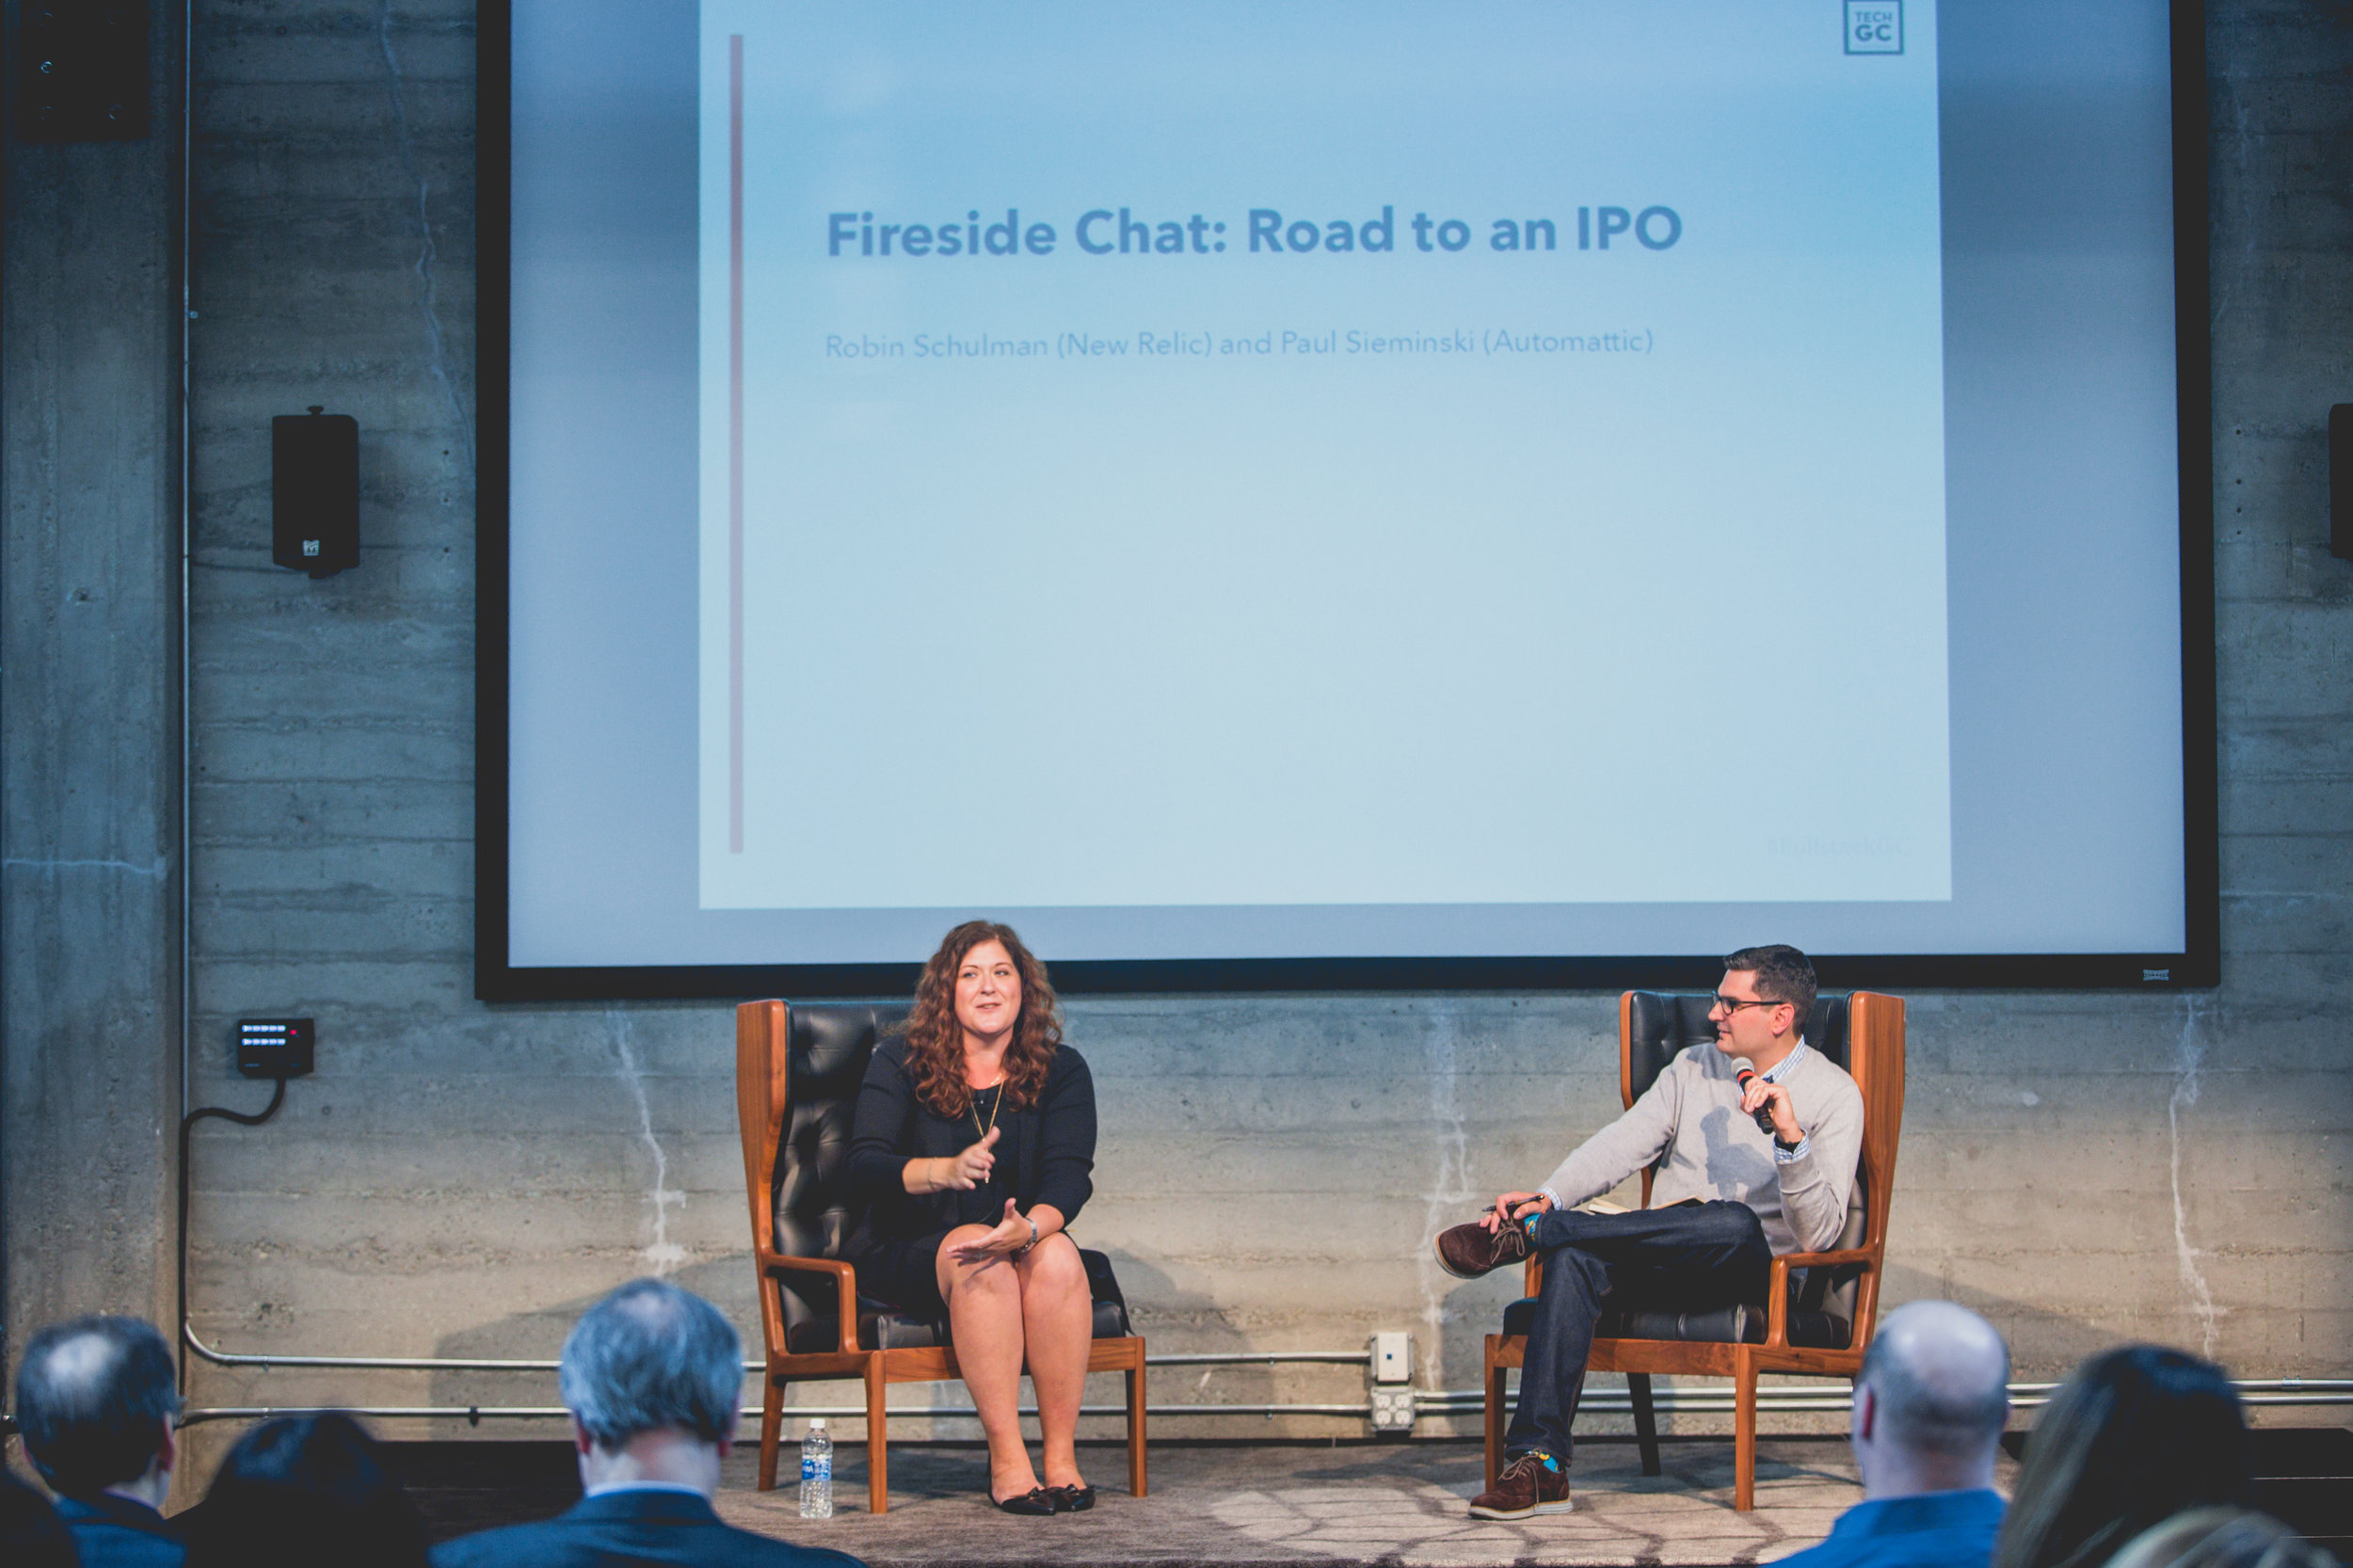 Robin Schulman, General Counsel, New Relic and Paul Sieminski, General Counsel, Automattic